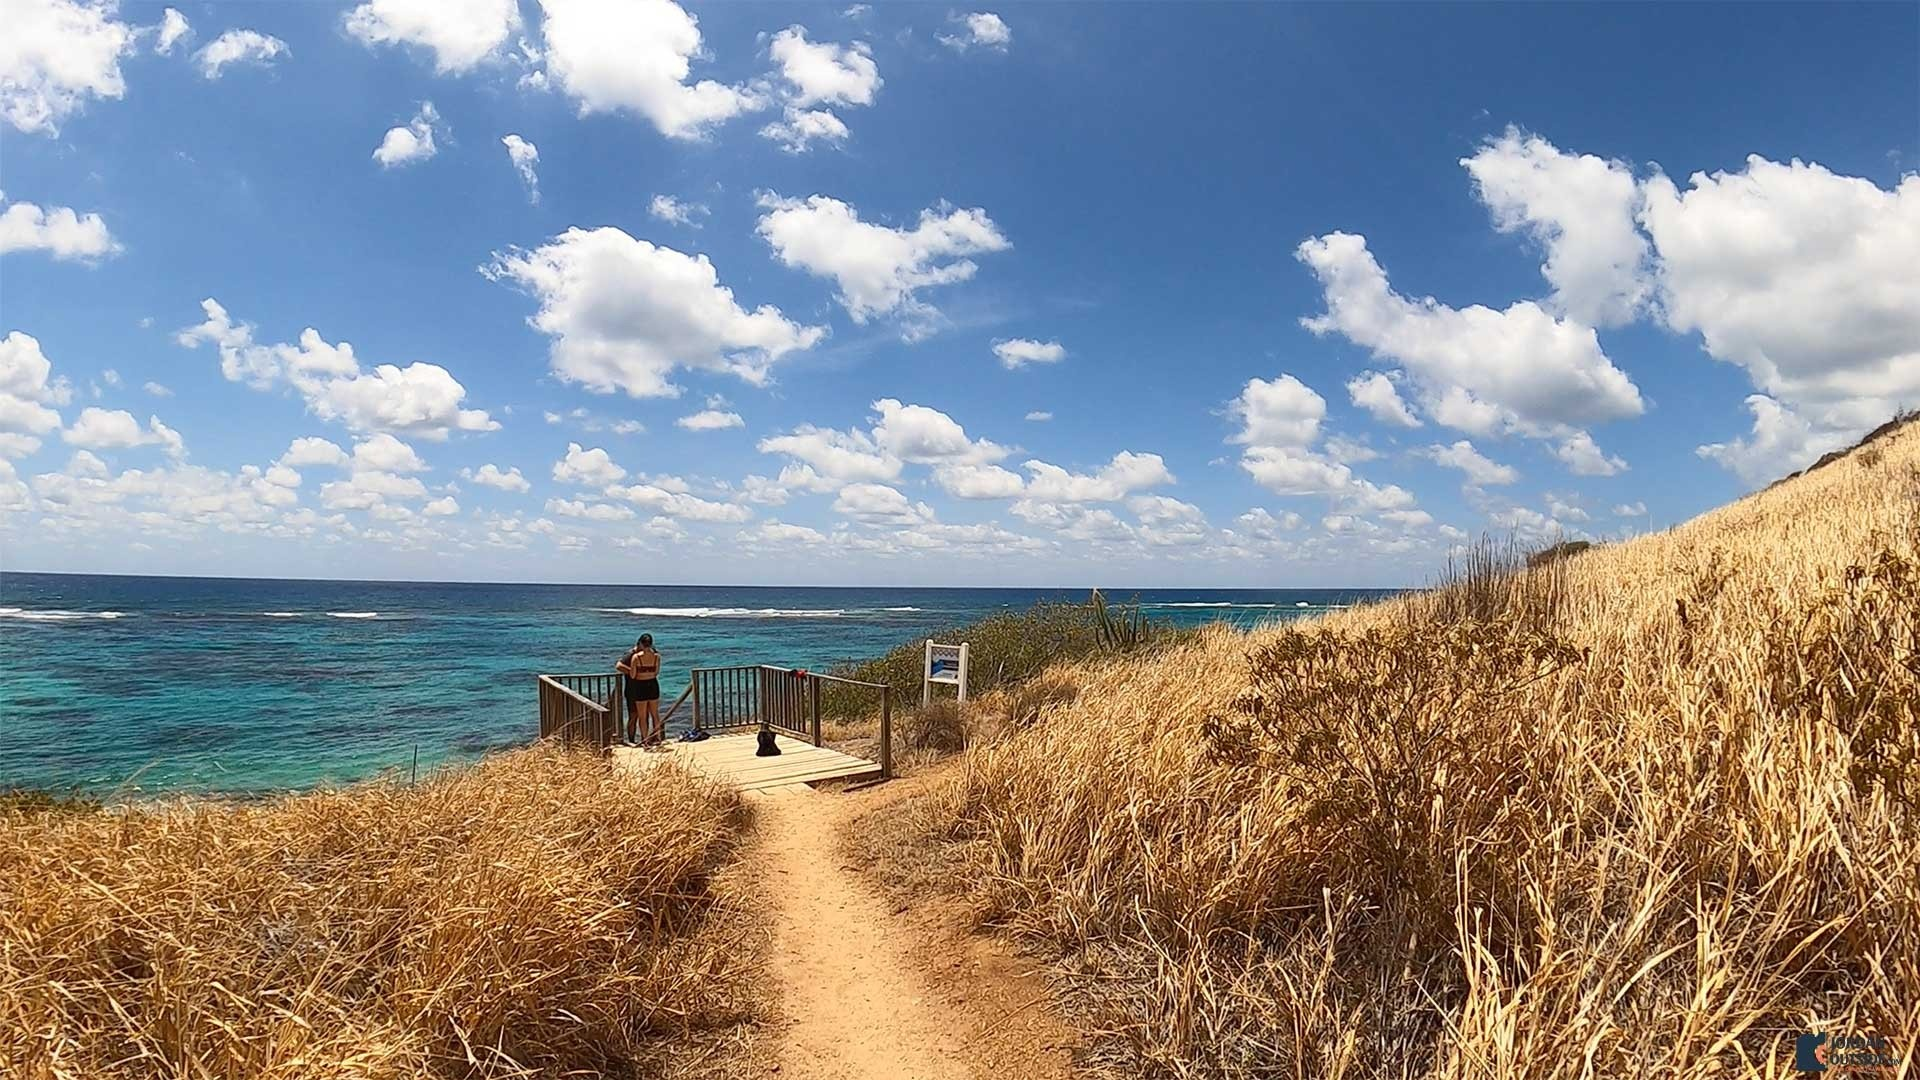 End of trail to Isaac's Bay Beach, St. Croix